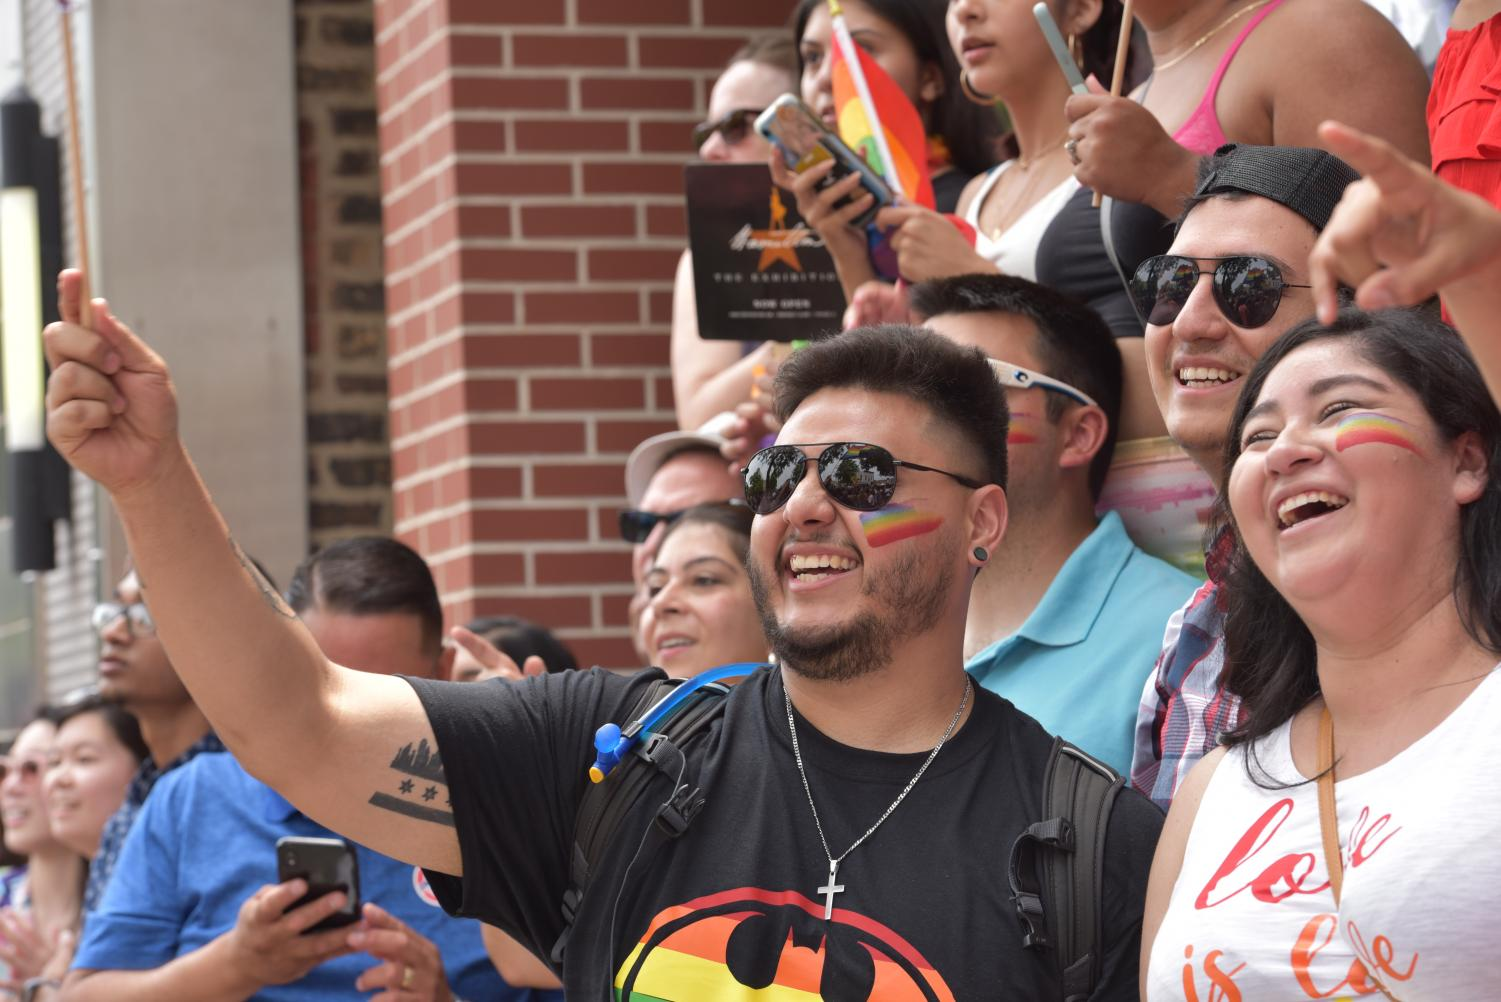 Illinois residents celebrate the LGBTQ community at the Chicago pride parade. Illinois Gov. J.B. Pritzker signed a bill Aug. 9 that mandates all public schools in the state to teach about the contributions made by LGBTQ people to state and U.S. history.